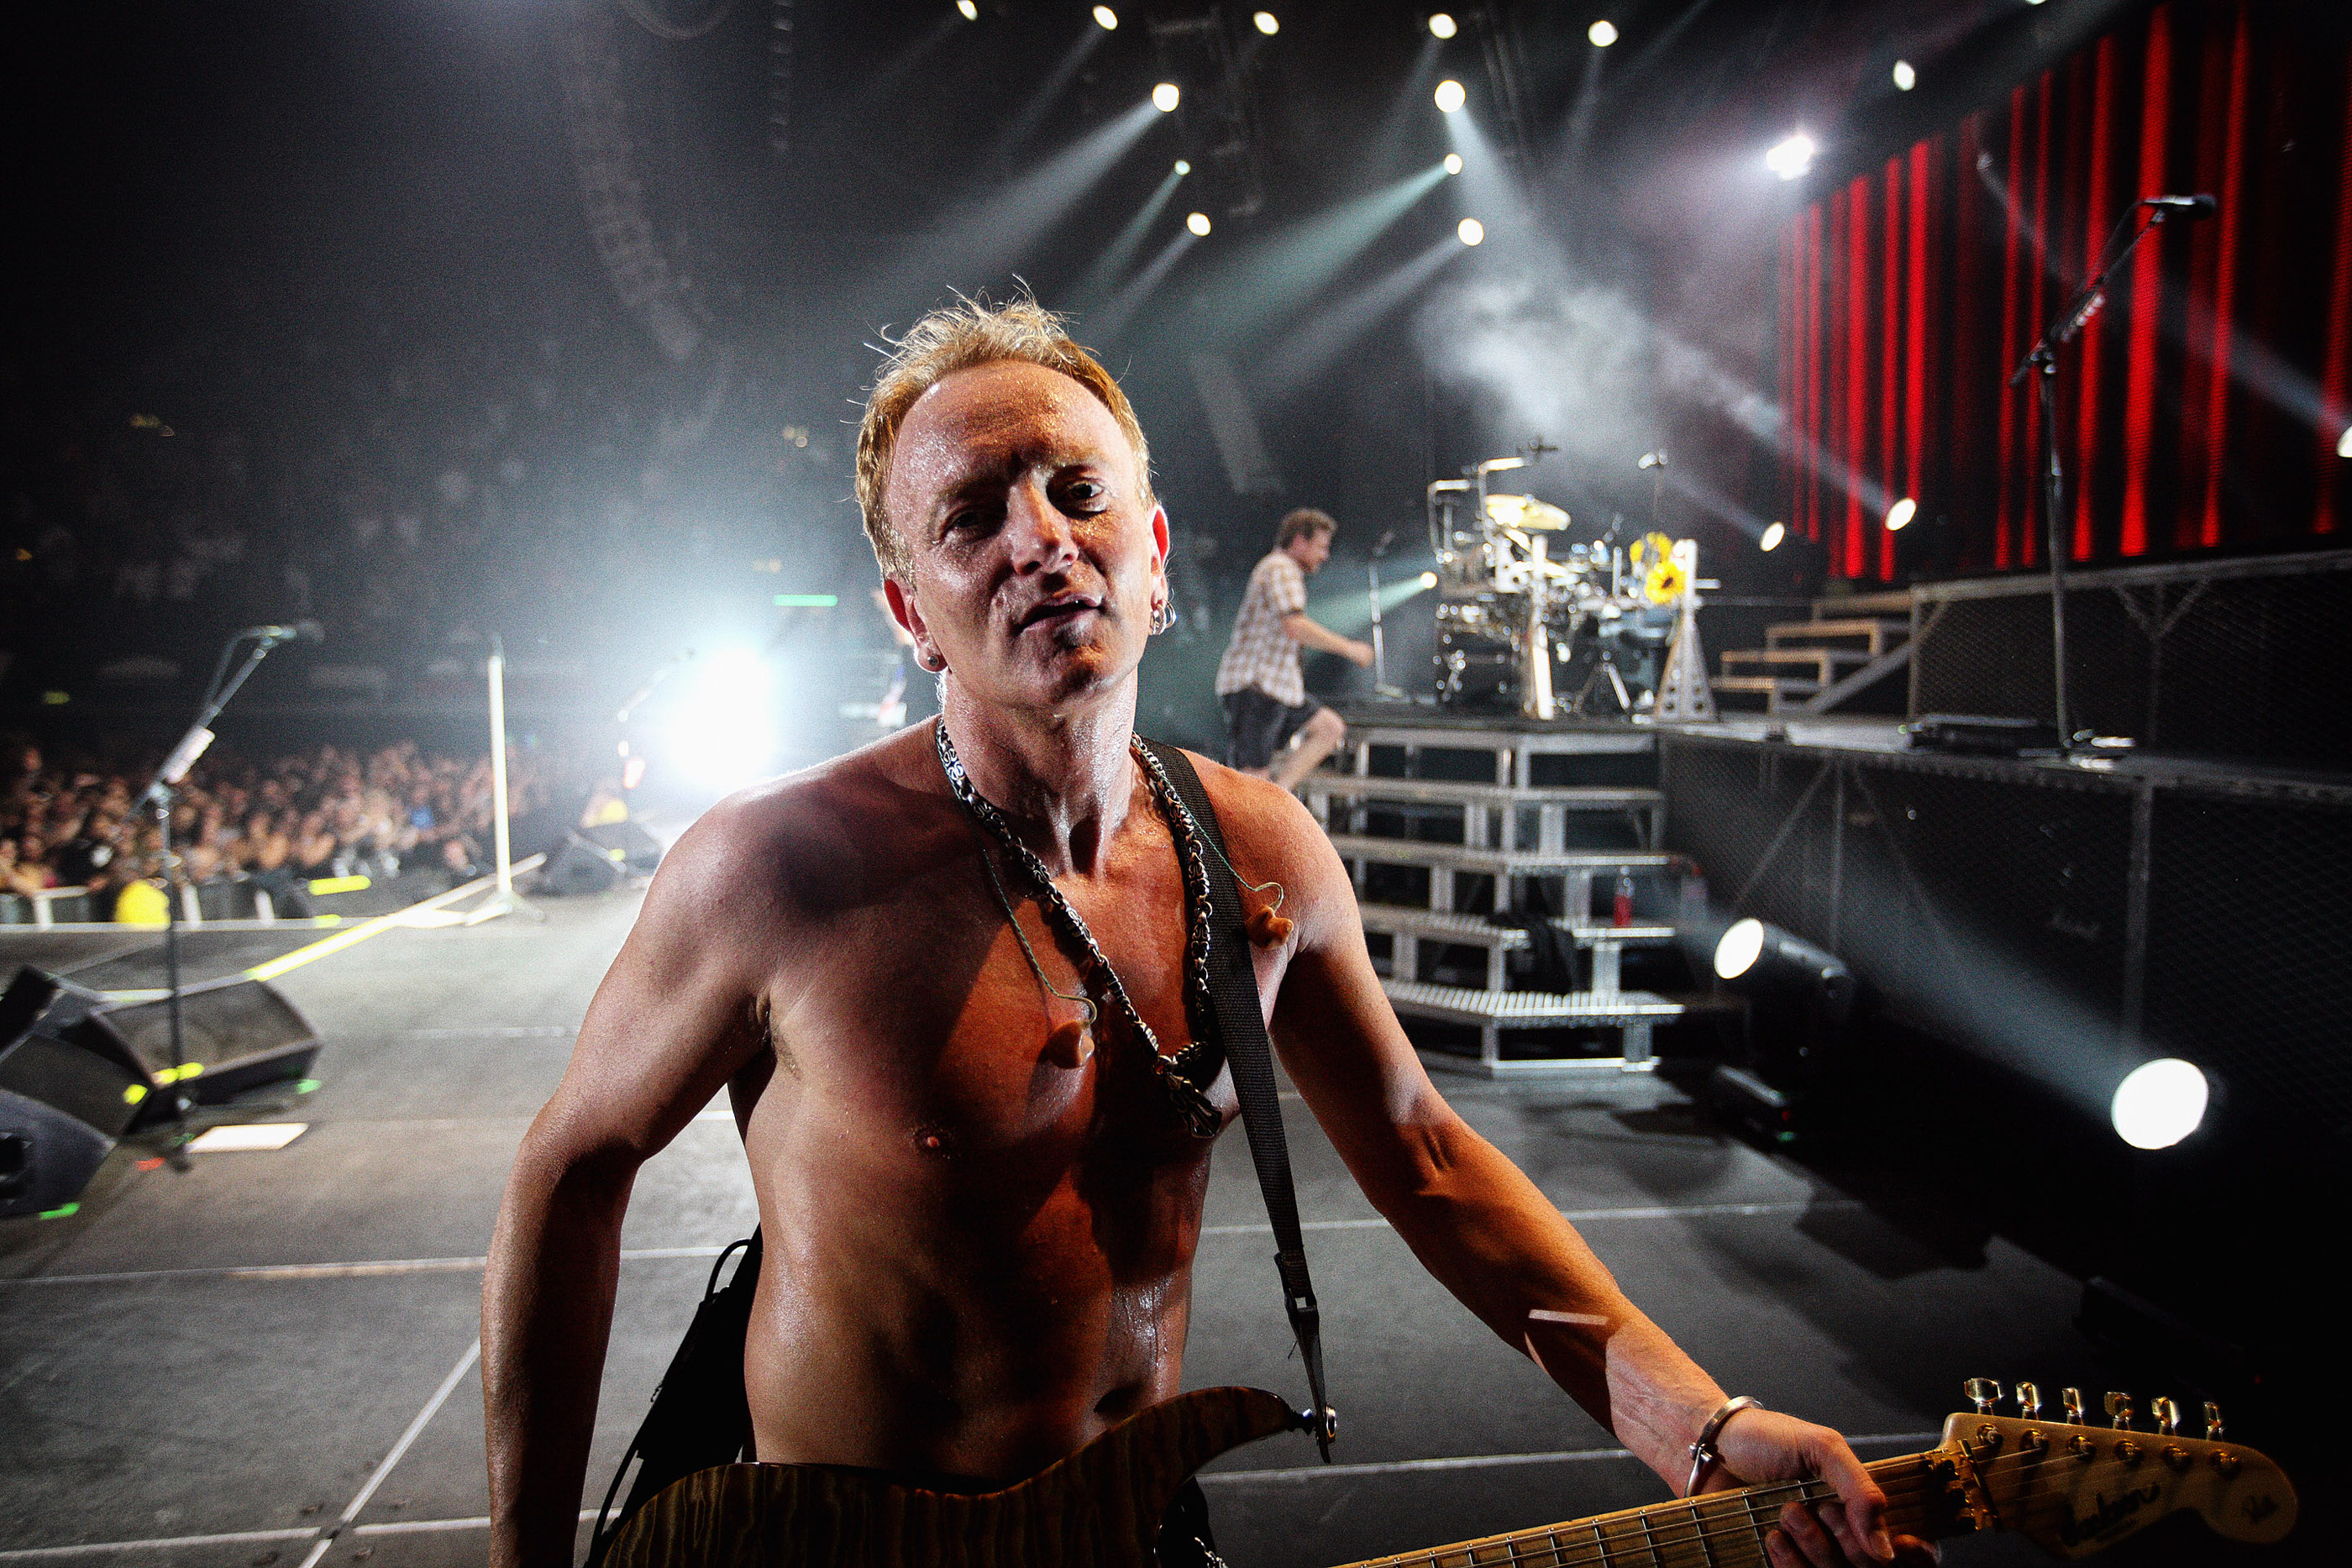 Phil Collen Def Leppard onstage at Wembley Arena London by Ash N